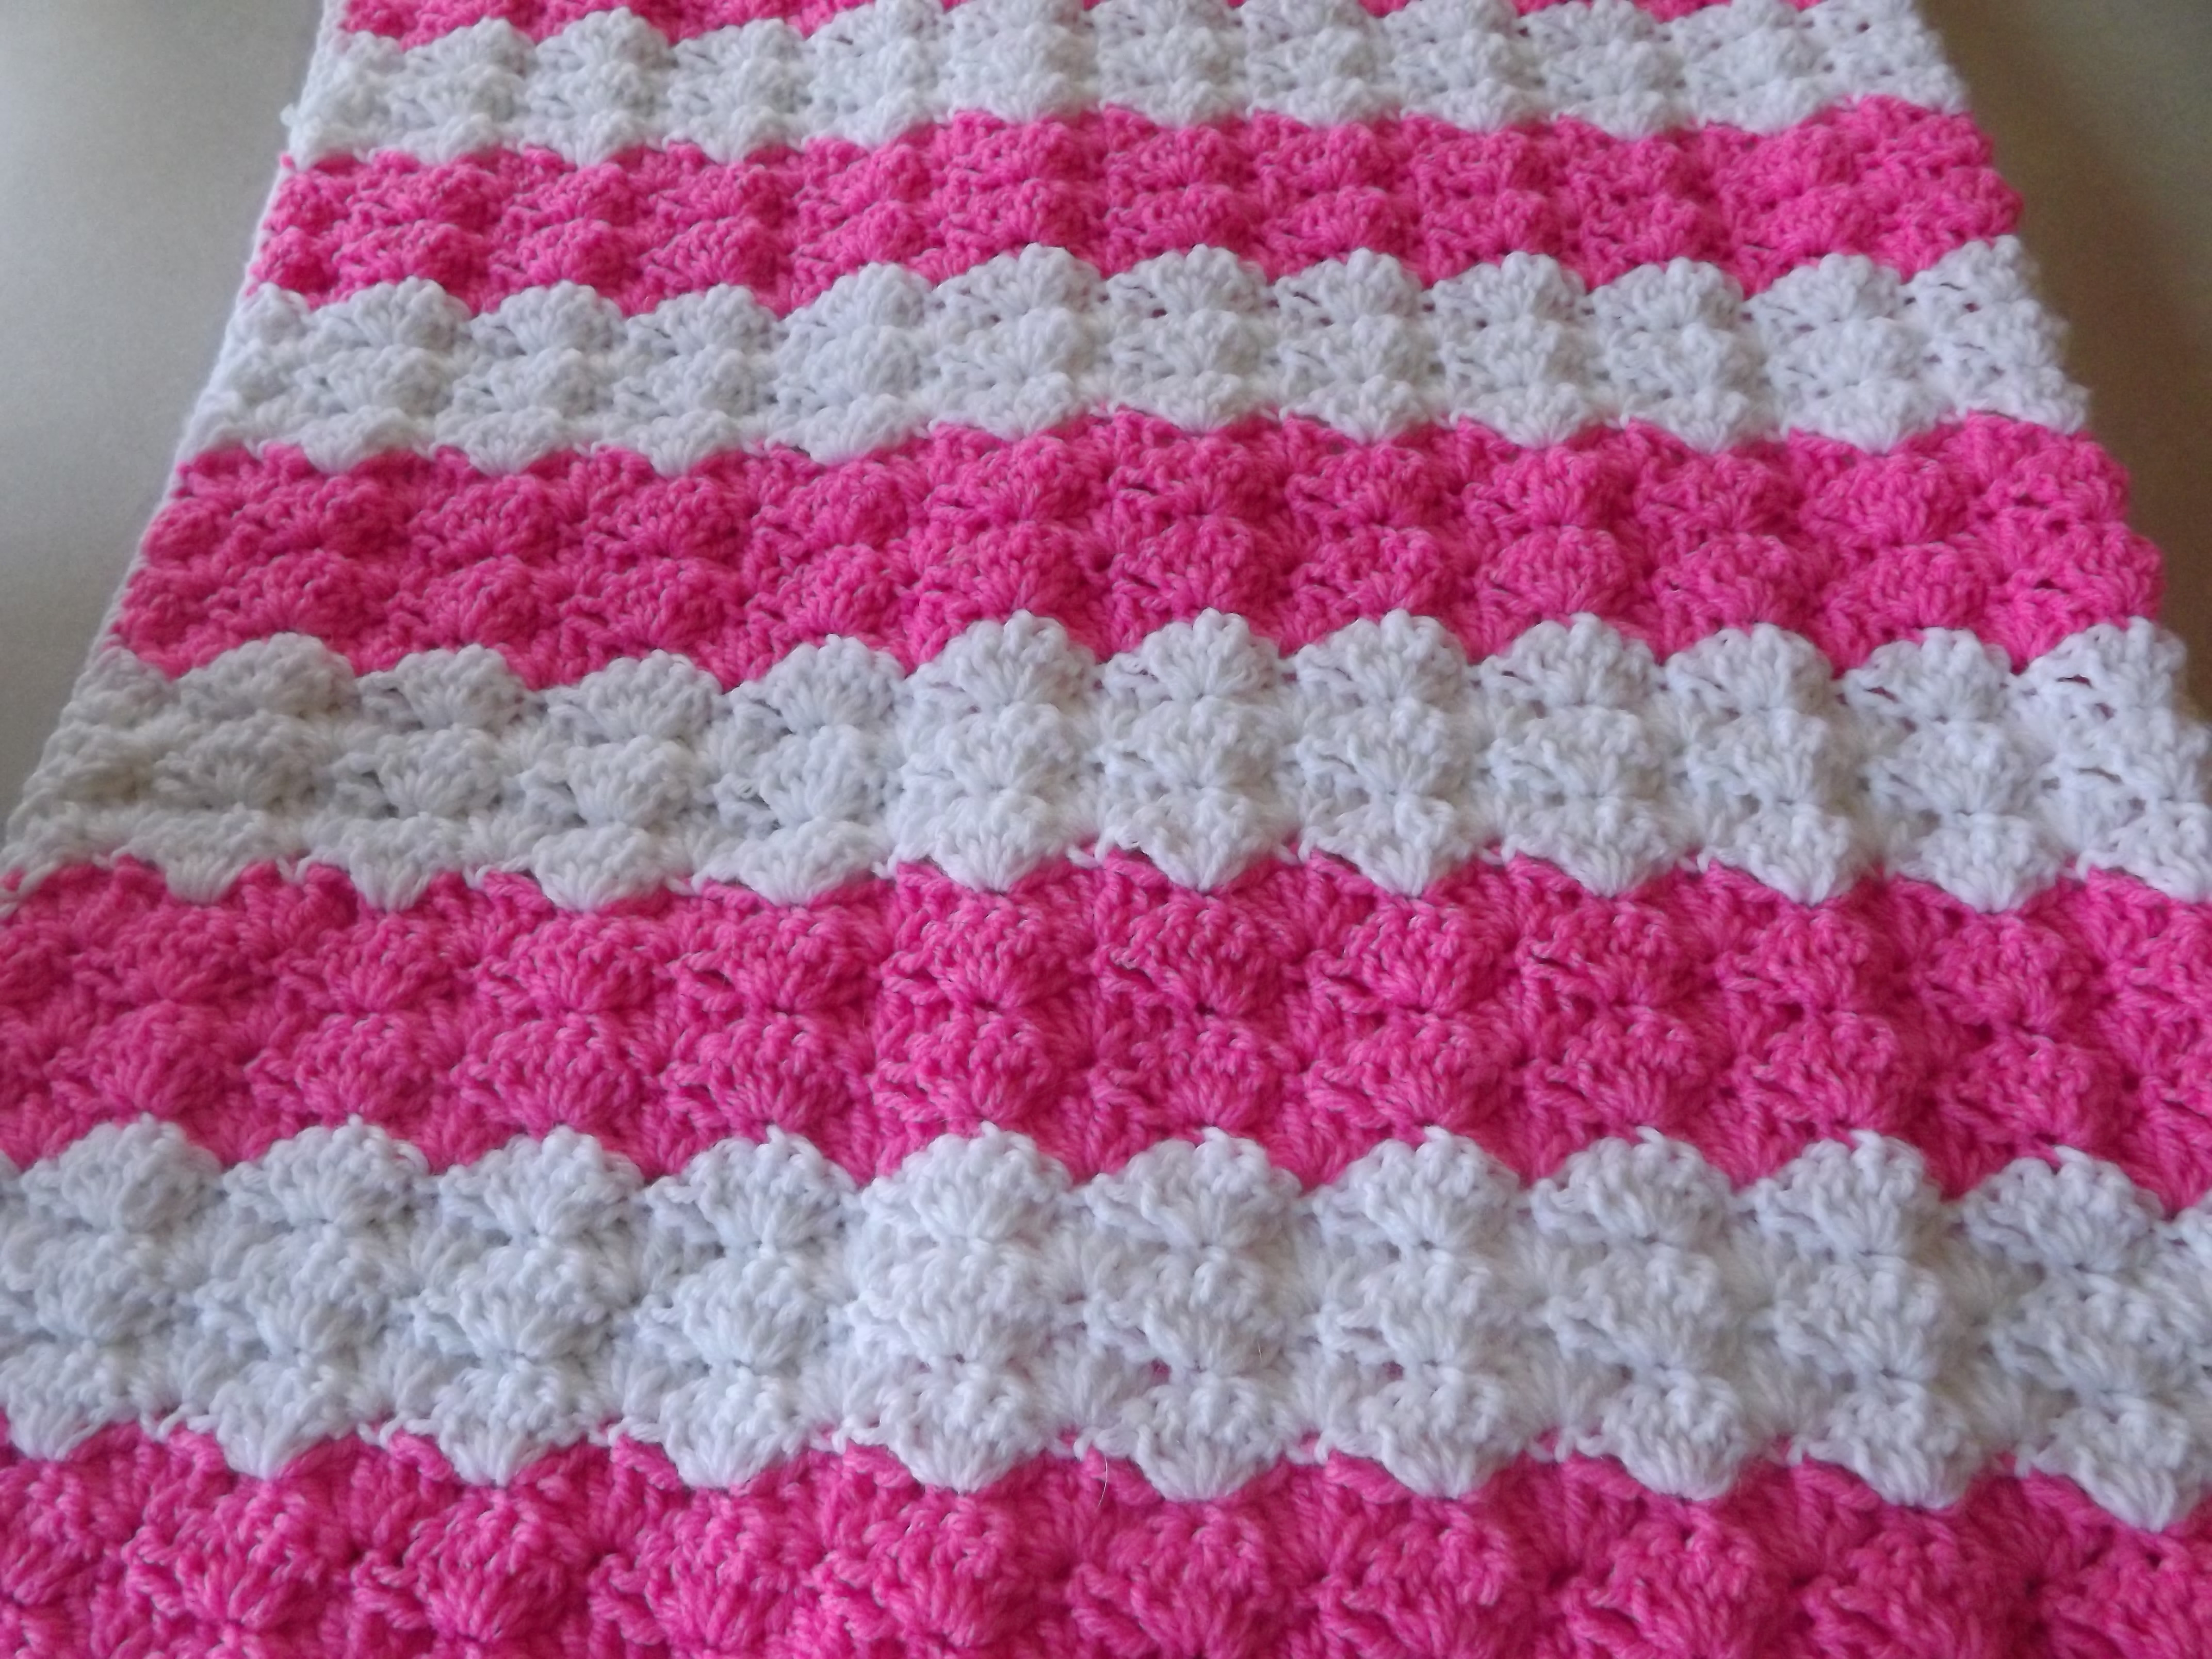 Free Crochet Baby Afghan Patterns Fresh Crochet Patterns Galore Pretty Shells Baby Blanket Of Superb 46 Photos Free Crochet Baby Afghan Patterns